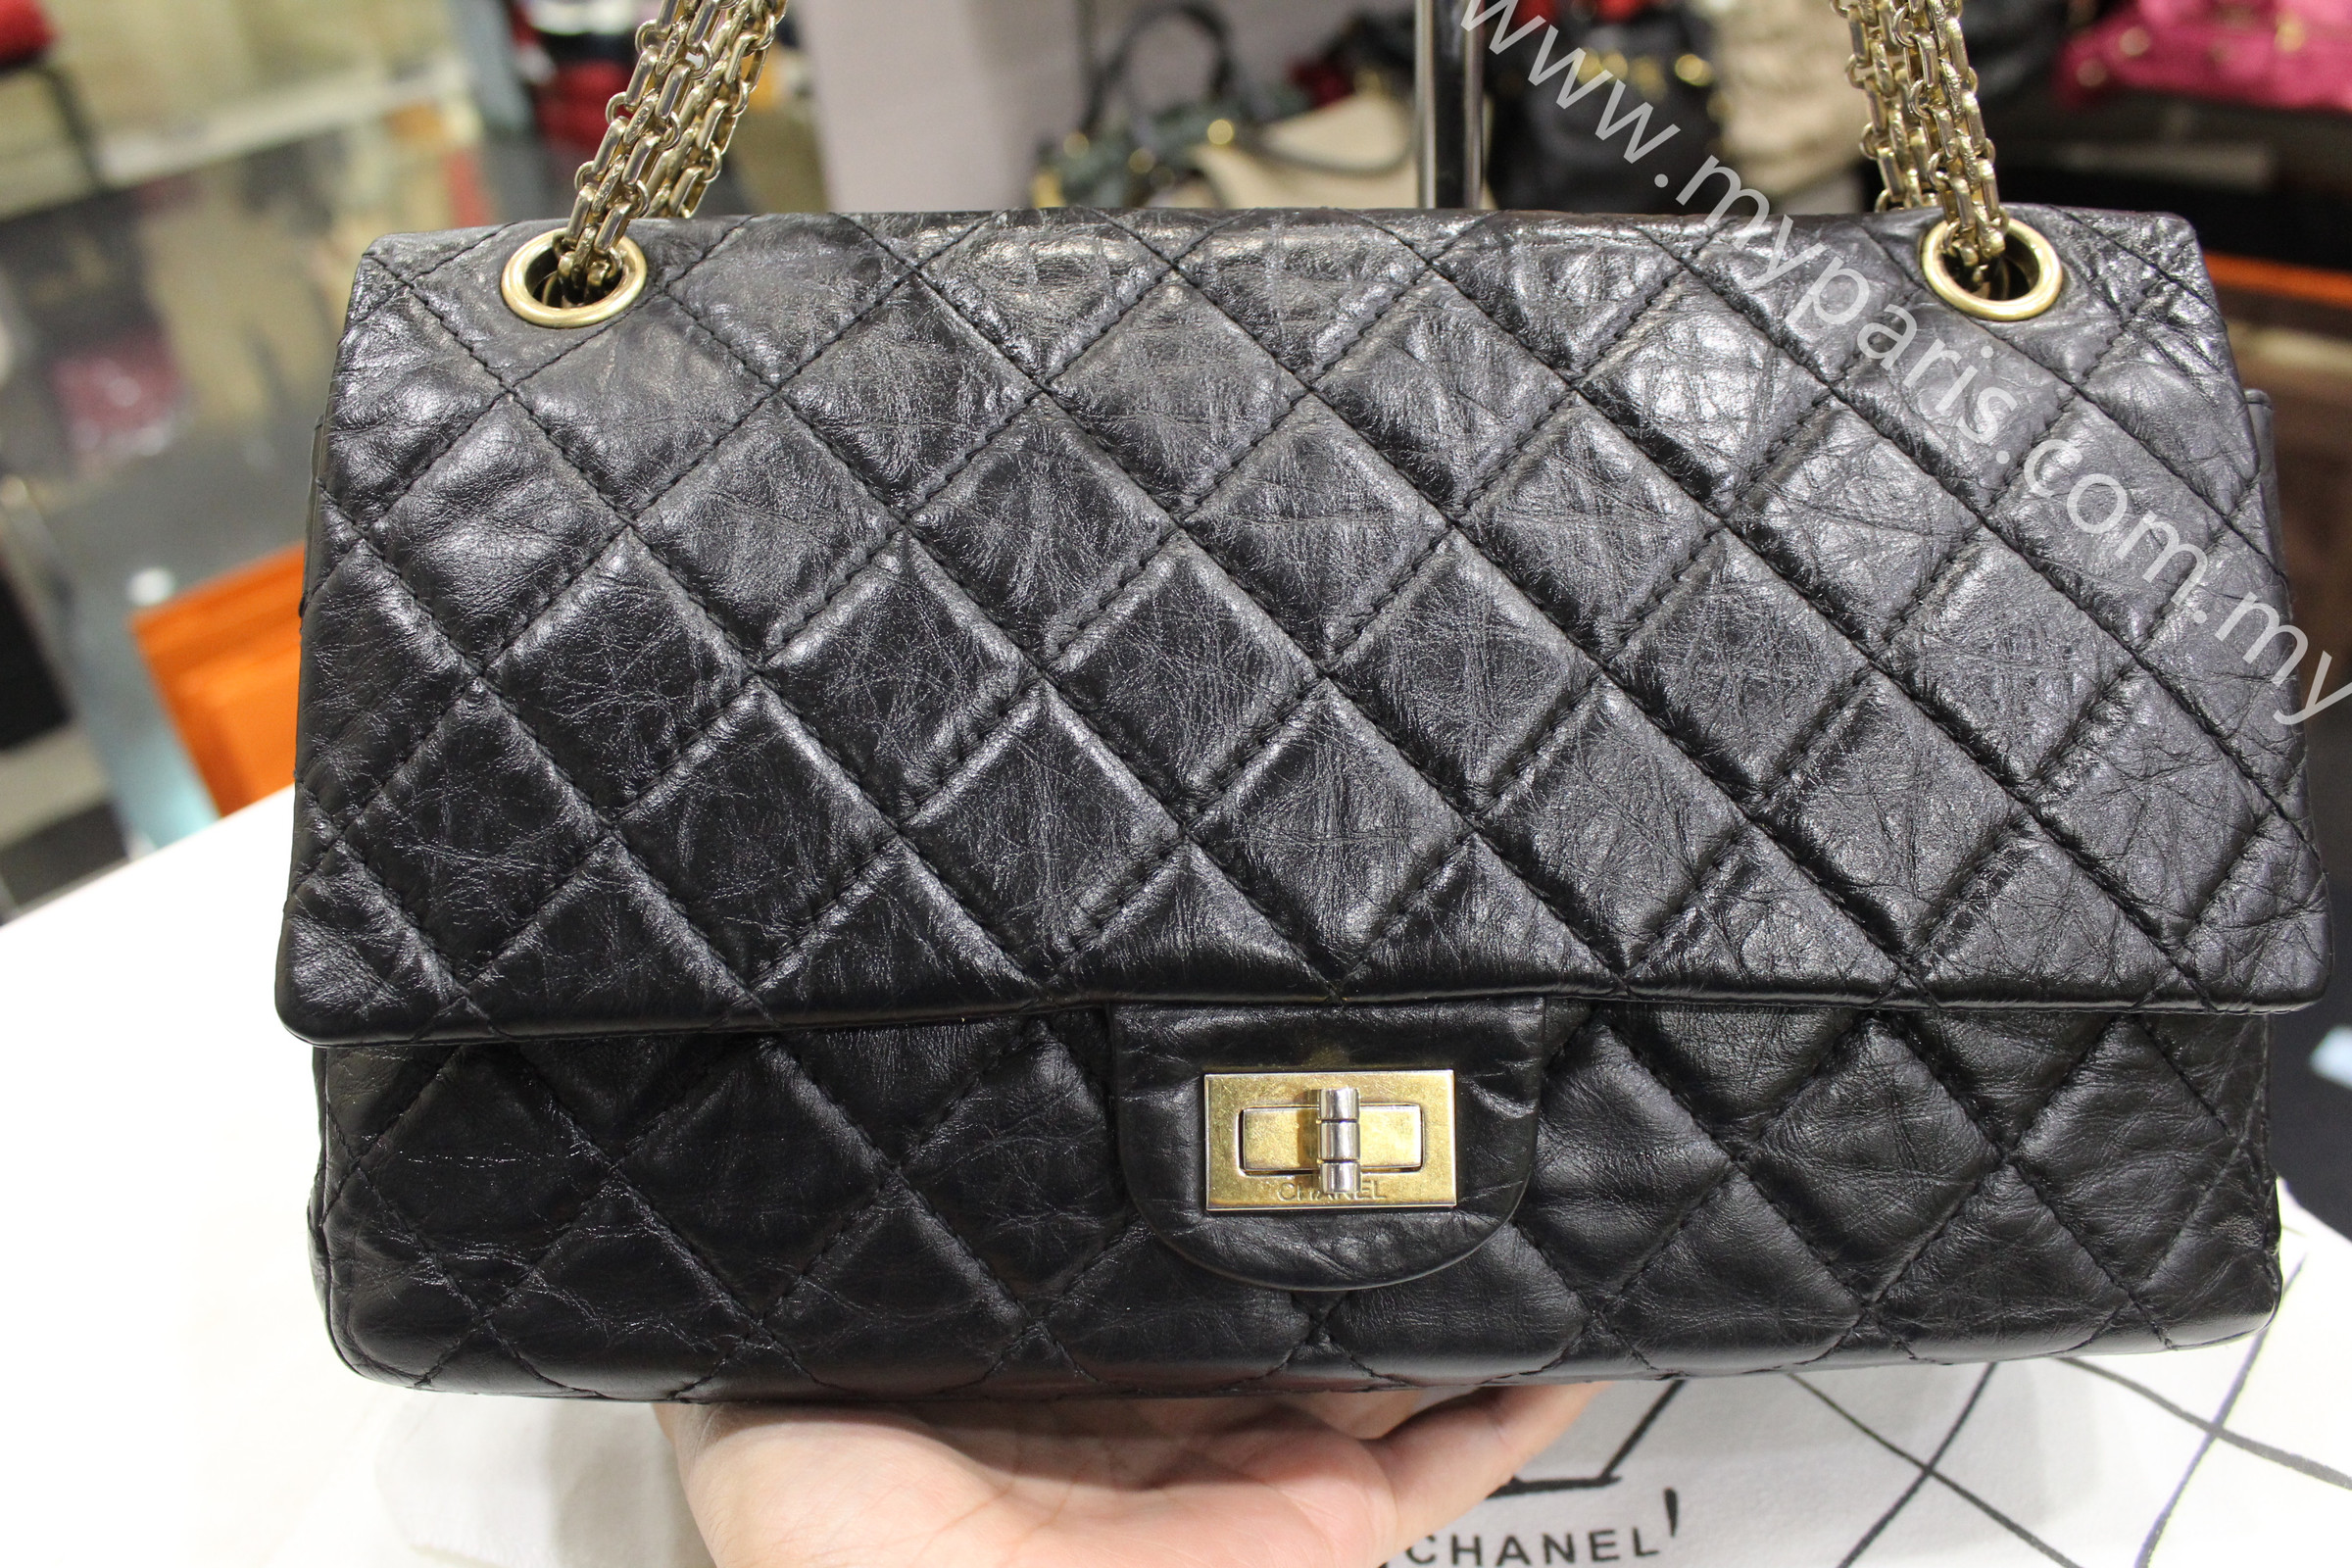 006b074b6d68bb Chanel 2.55 Black Quilted Aged Calfskin Reissue 226 Gold Hardware Double  Flap Bag